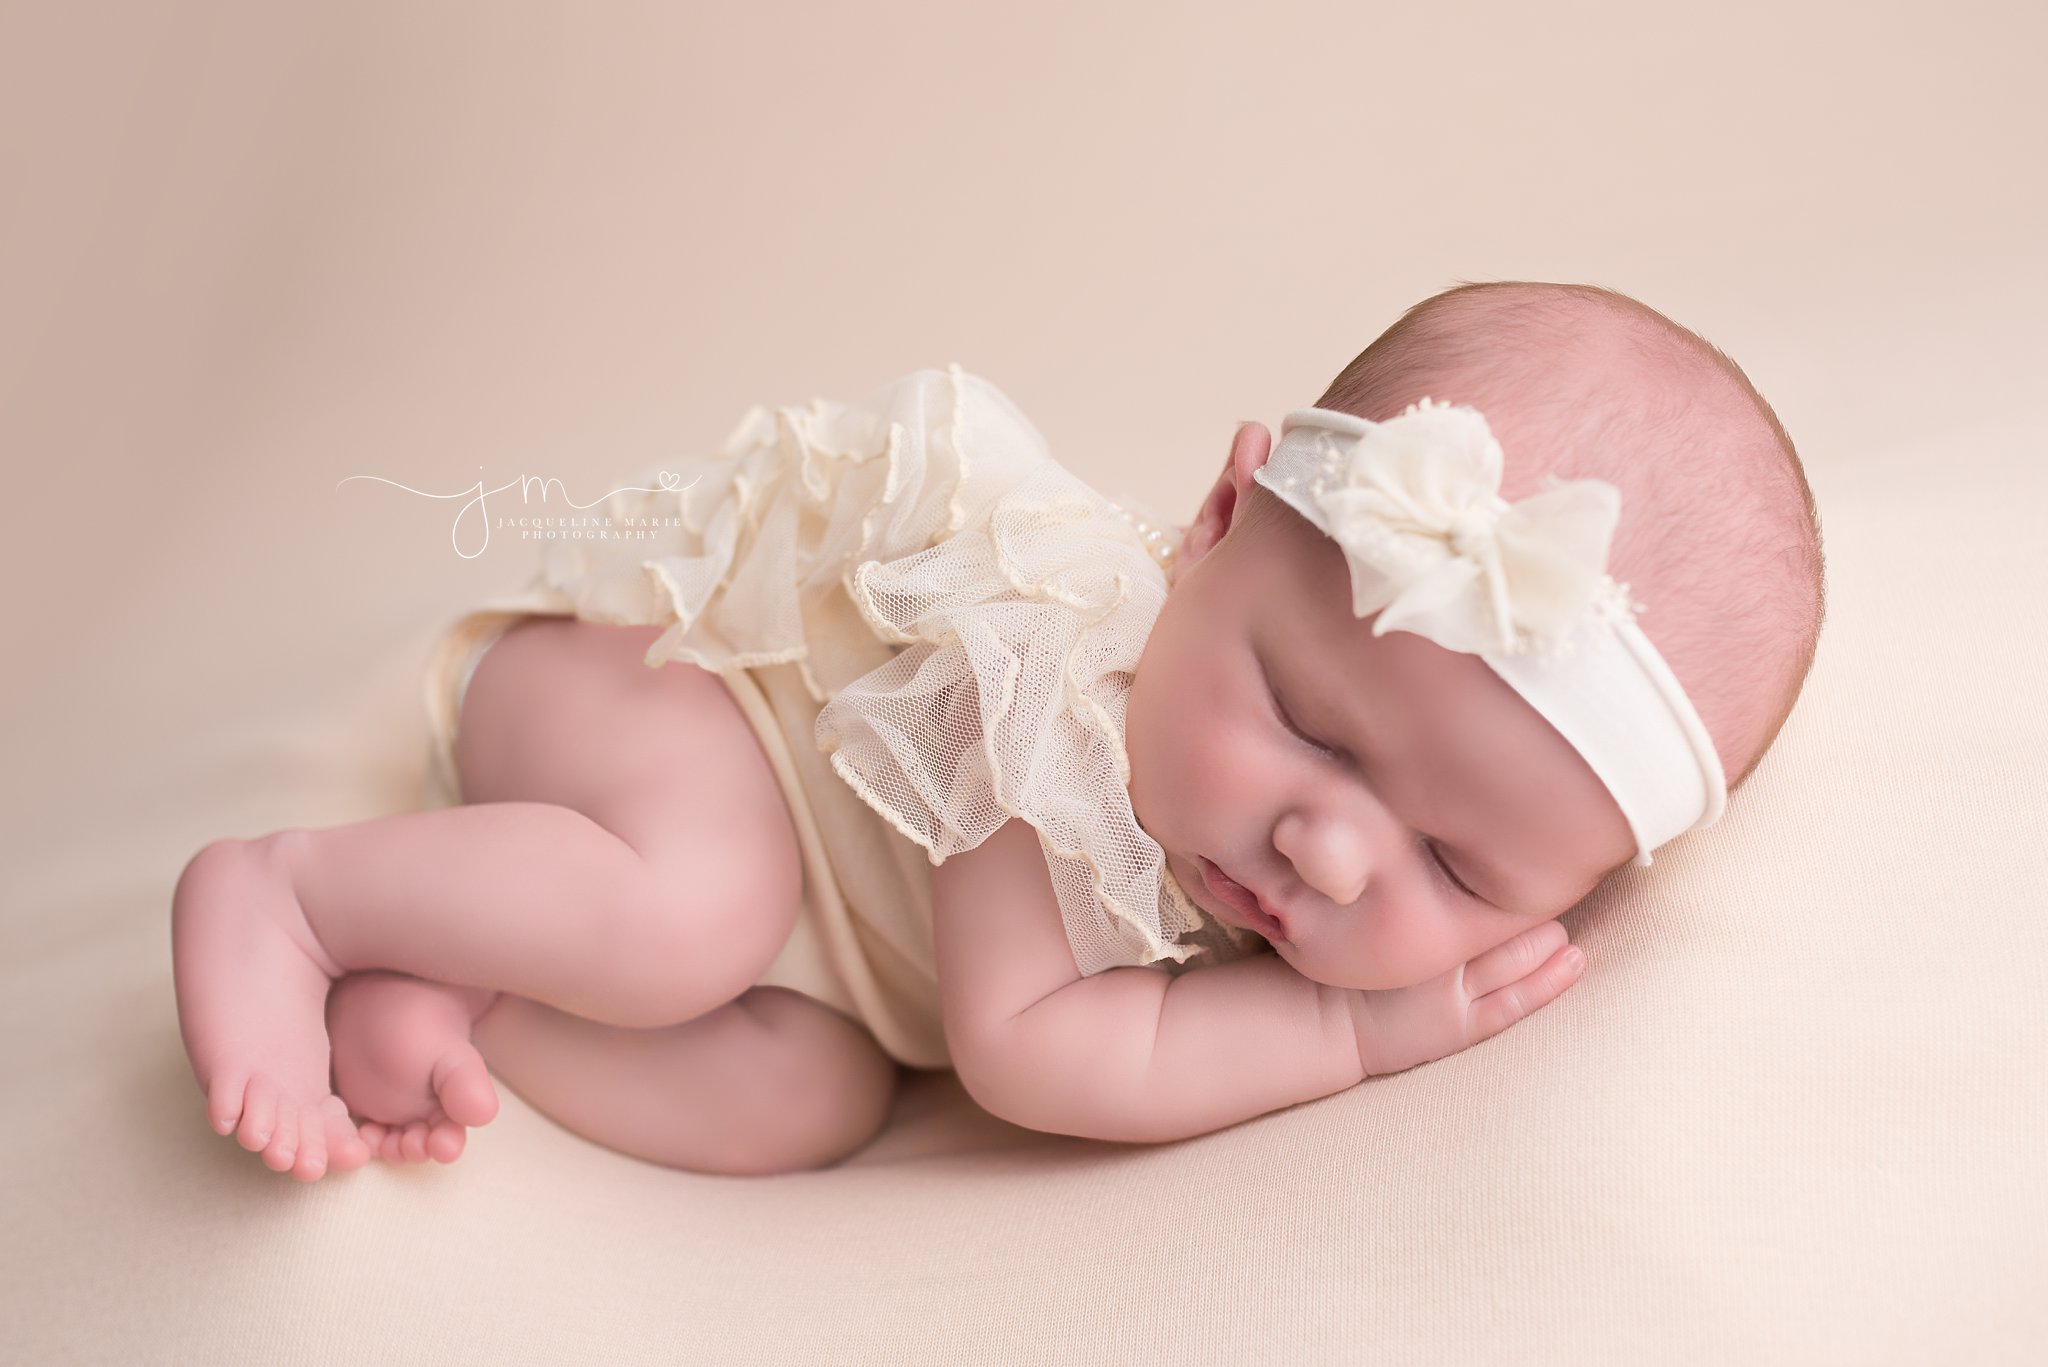 Sleeping newborn baby girl portrait features fingers and toes while baby sleeps in Columbus Ohio at Jacqueline Marie Photography